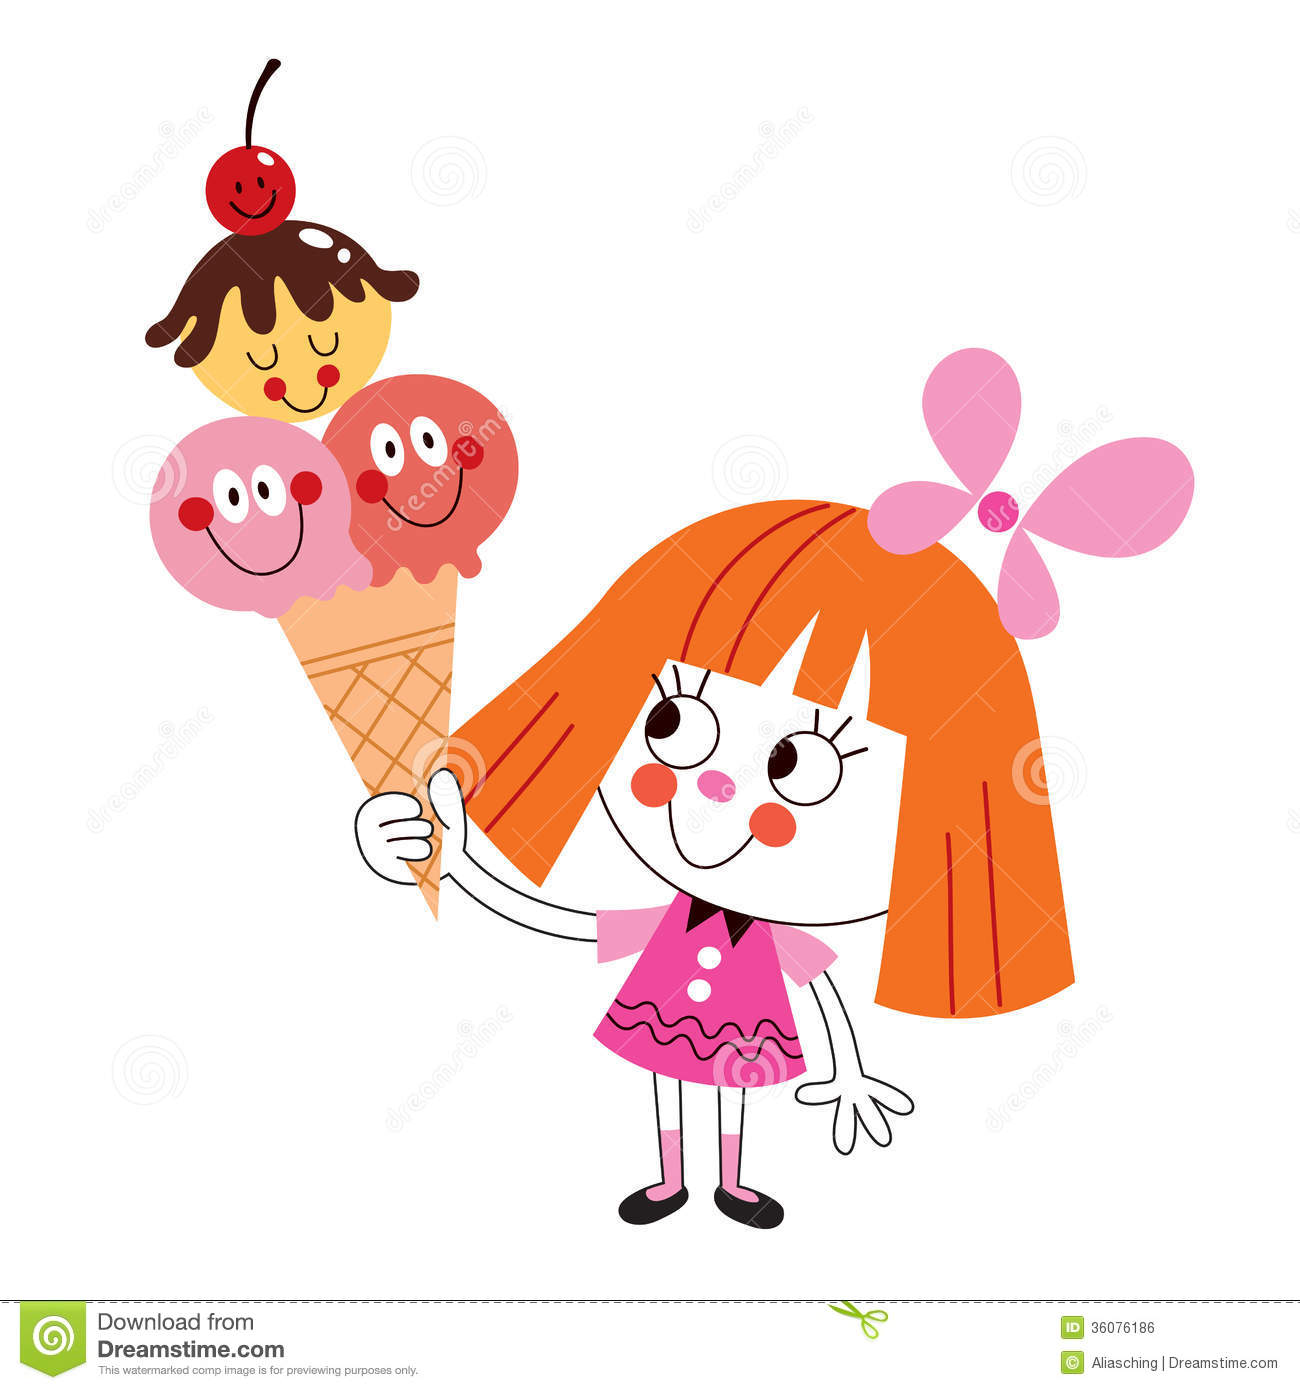 Girl Eating Popsicle Clip Art - Hot Girls Wallpaper